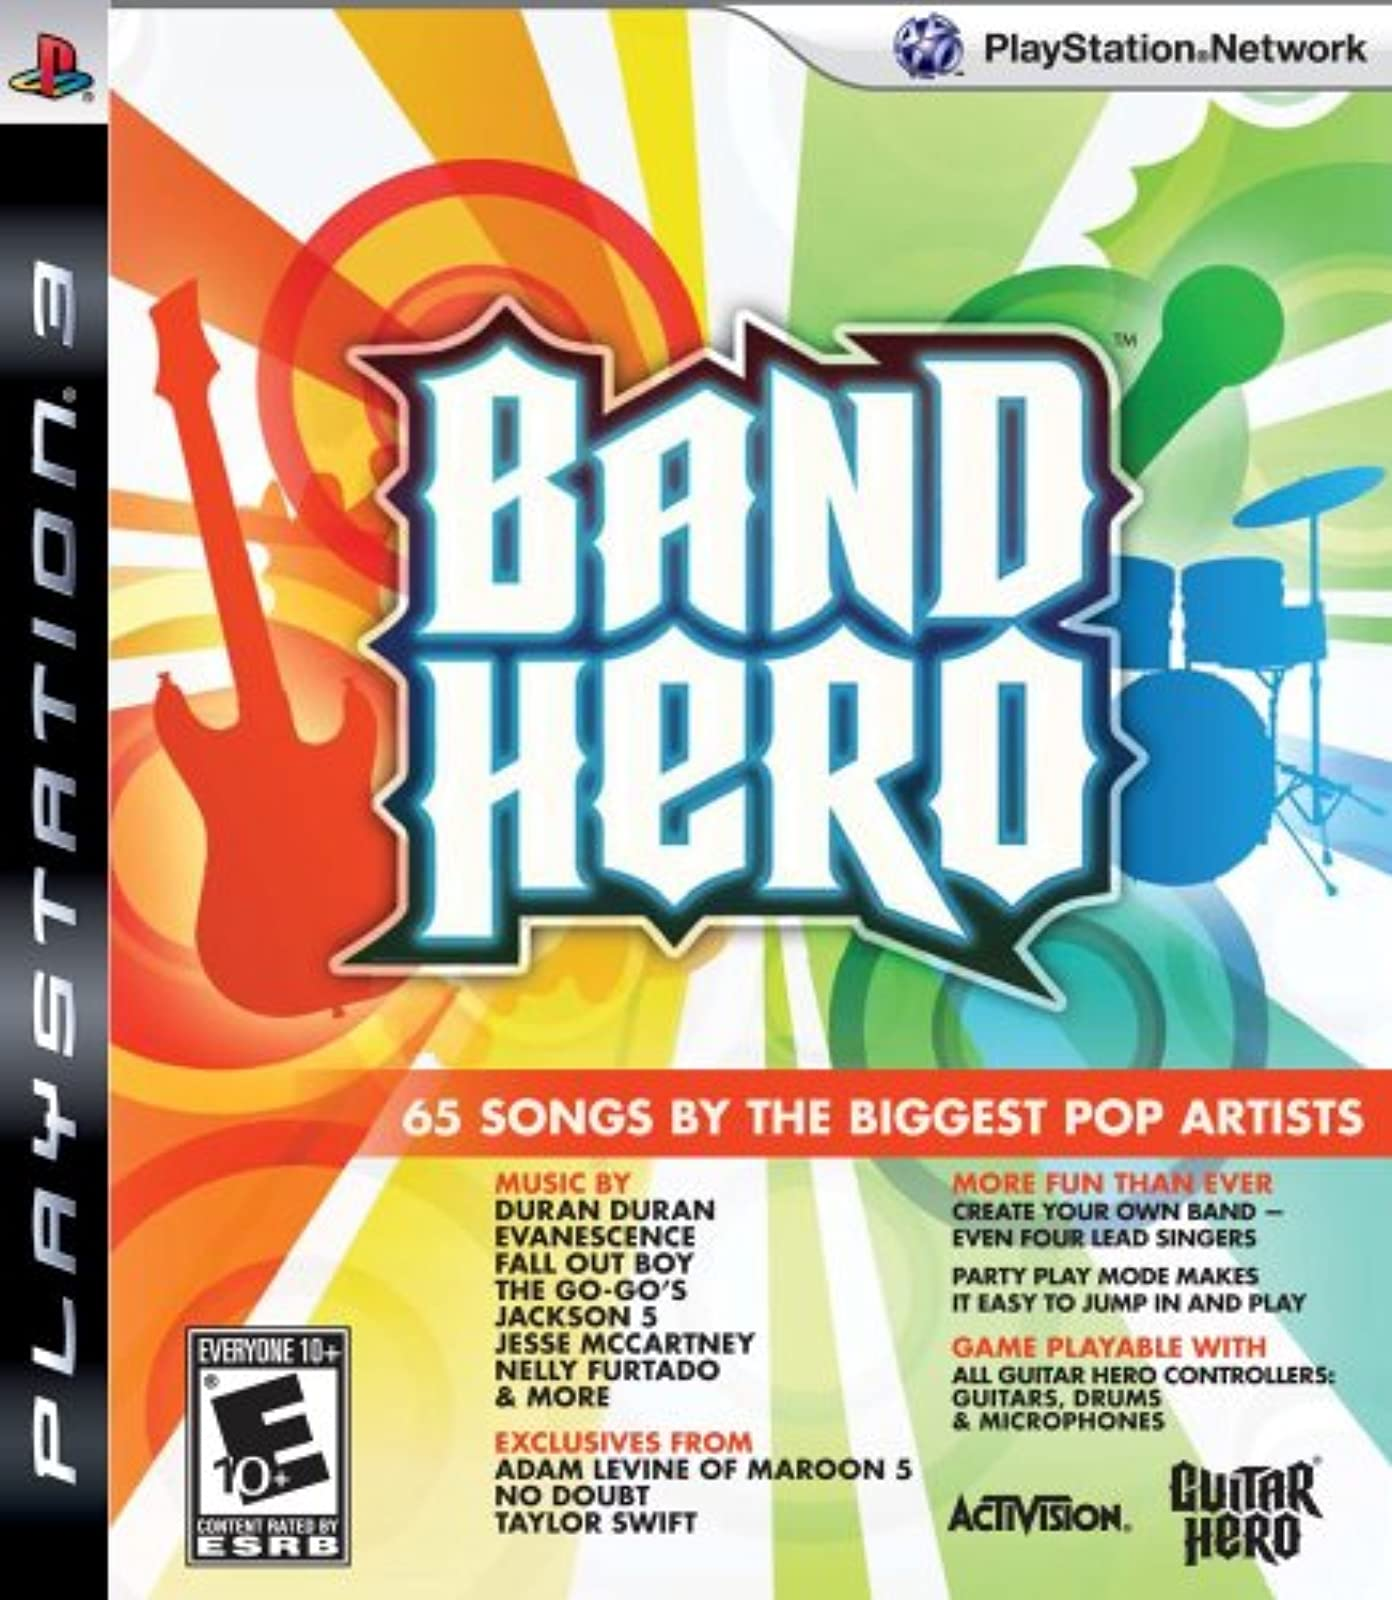 Band Hero Featuring Taylor Swift Stand Alone Software For PlayStation 3 PS3